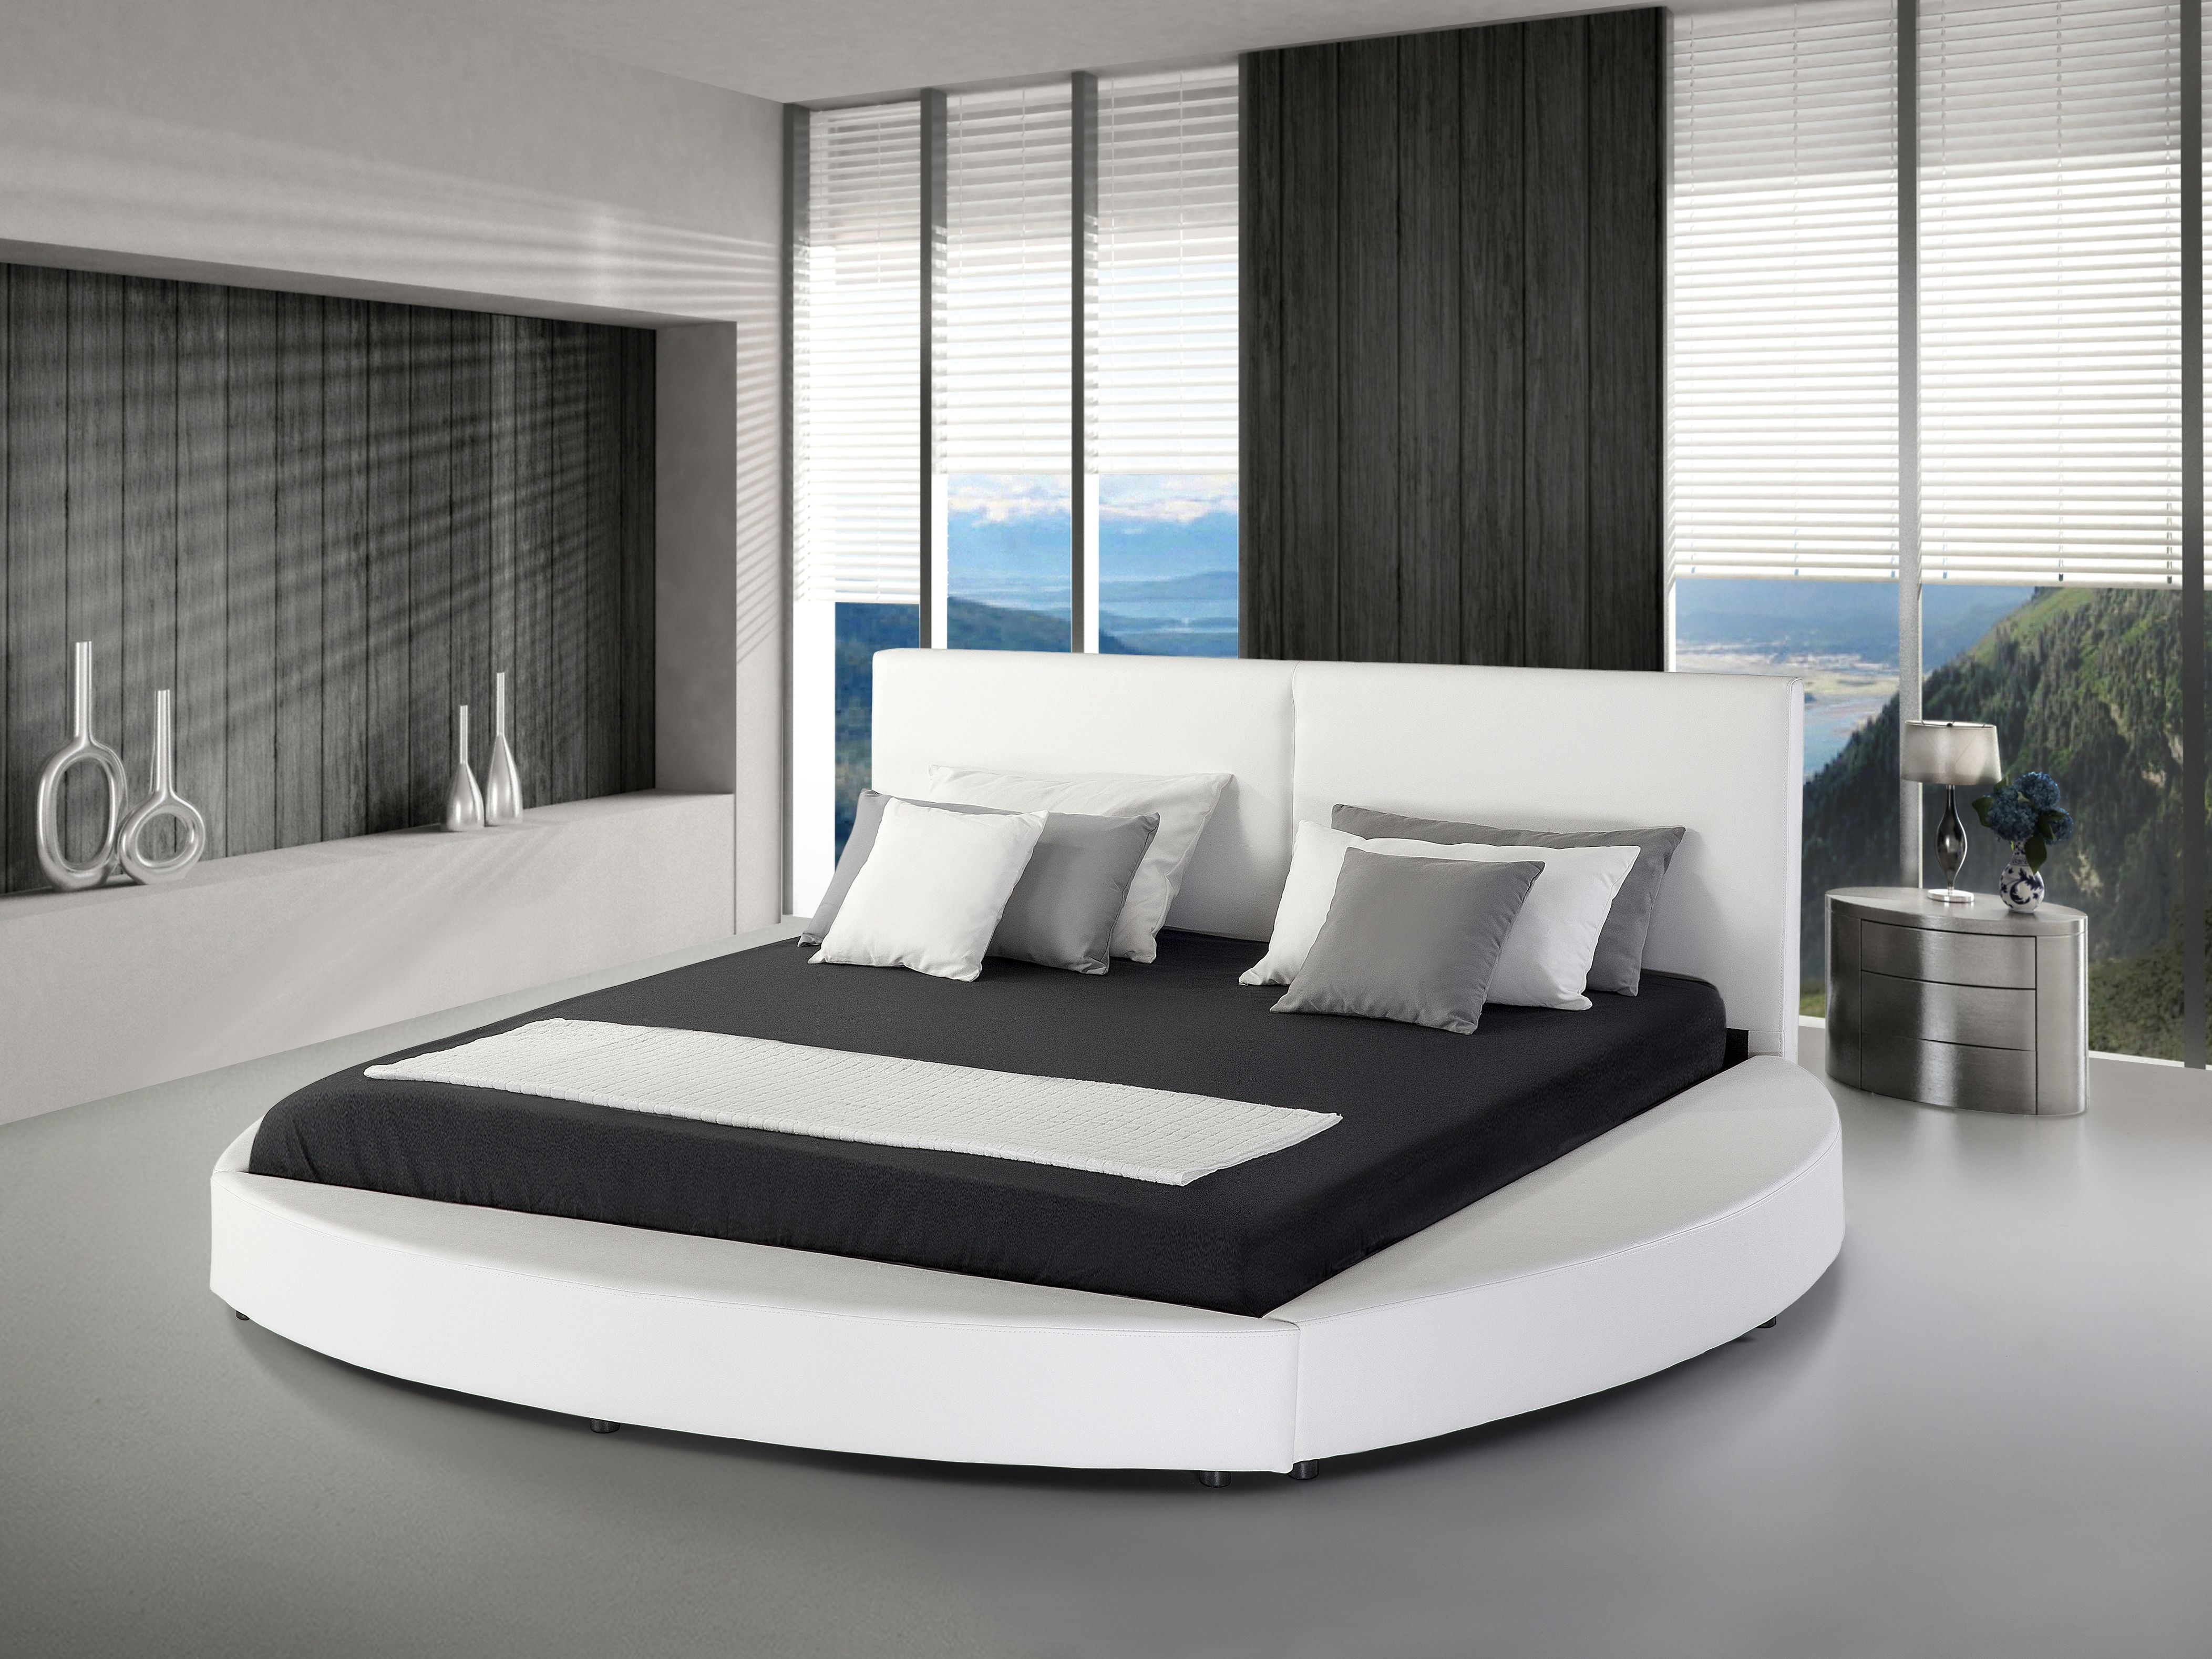 2 Persoons Spijlenbed.Bed Wit Leren Bed 180x200 Cm 2 Persoons Laval For The Home